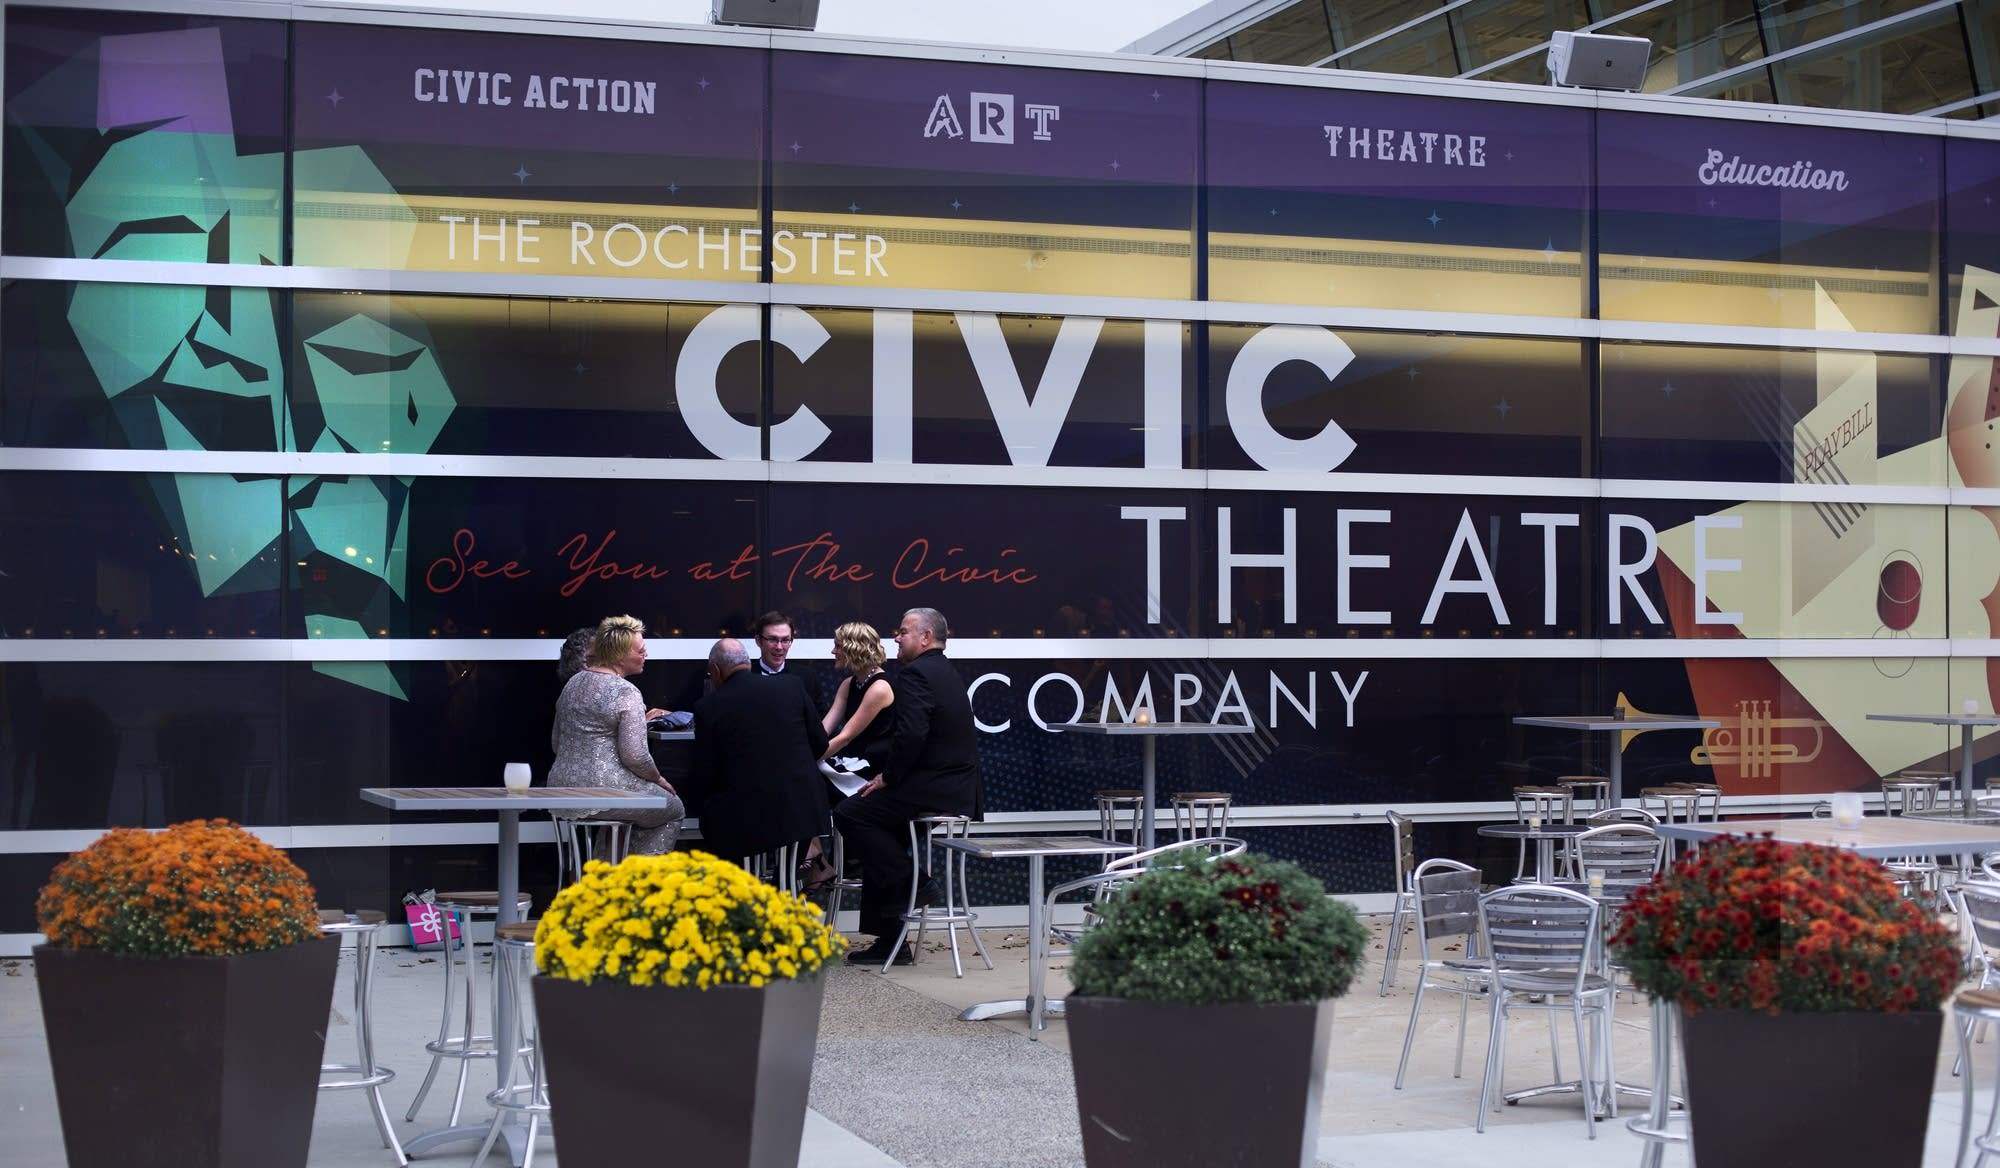 The Rochester Civic Theatre benefit on Sept. 24, 2016.